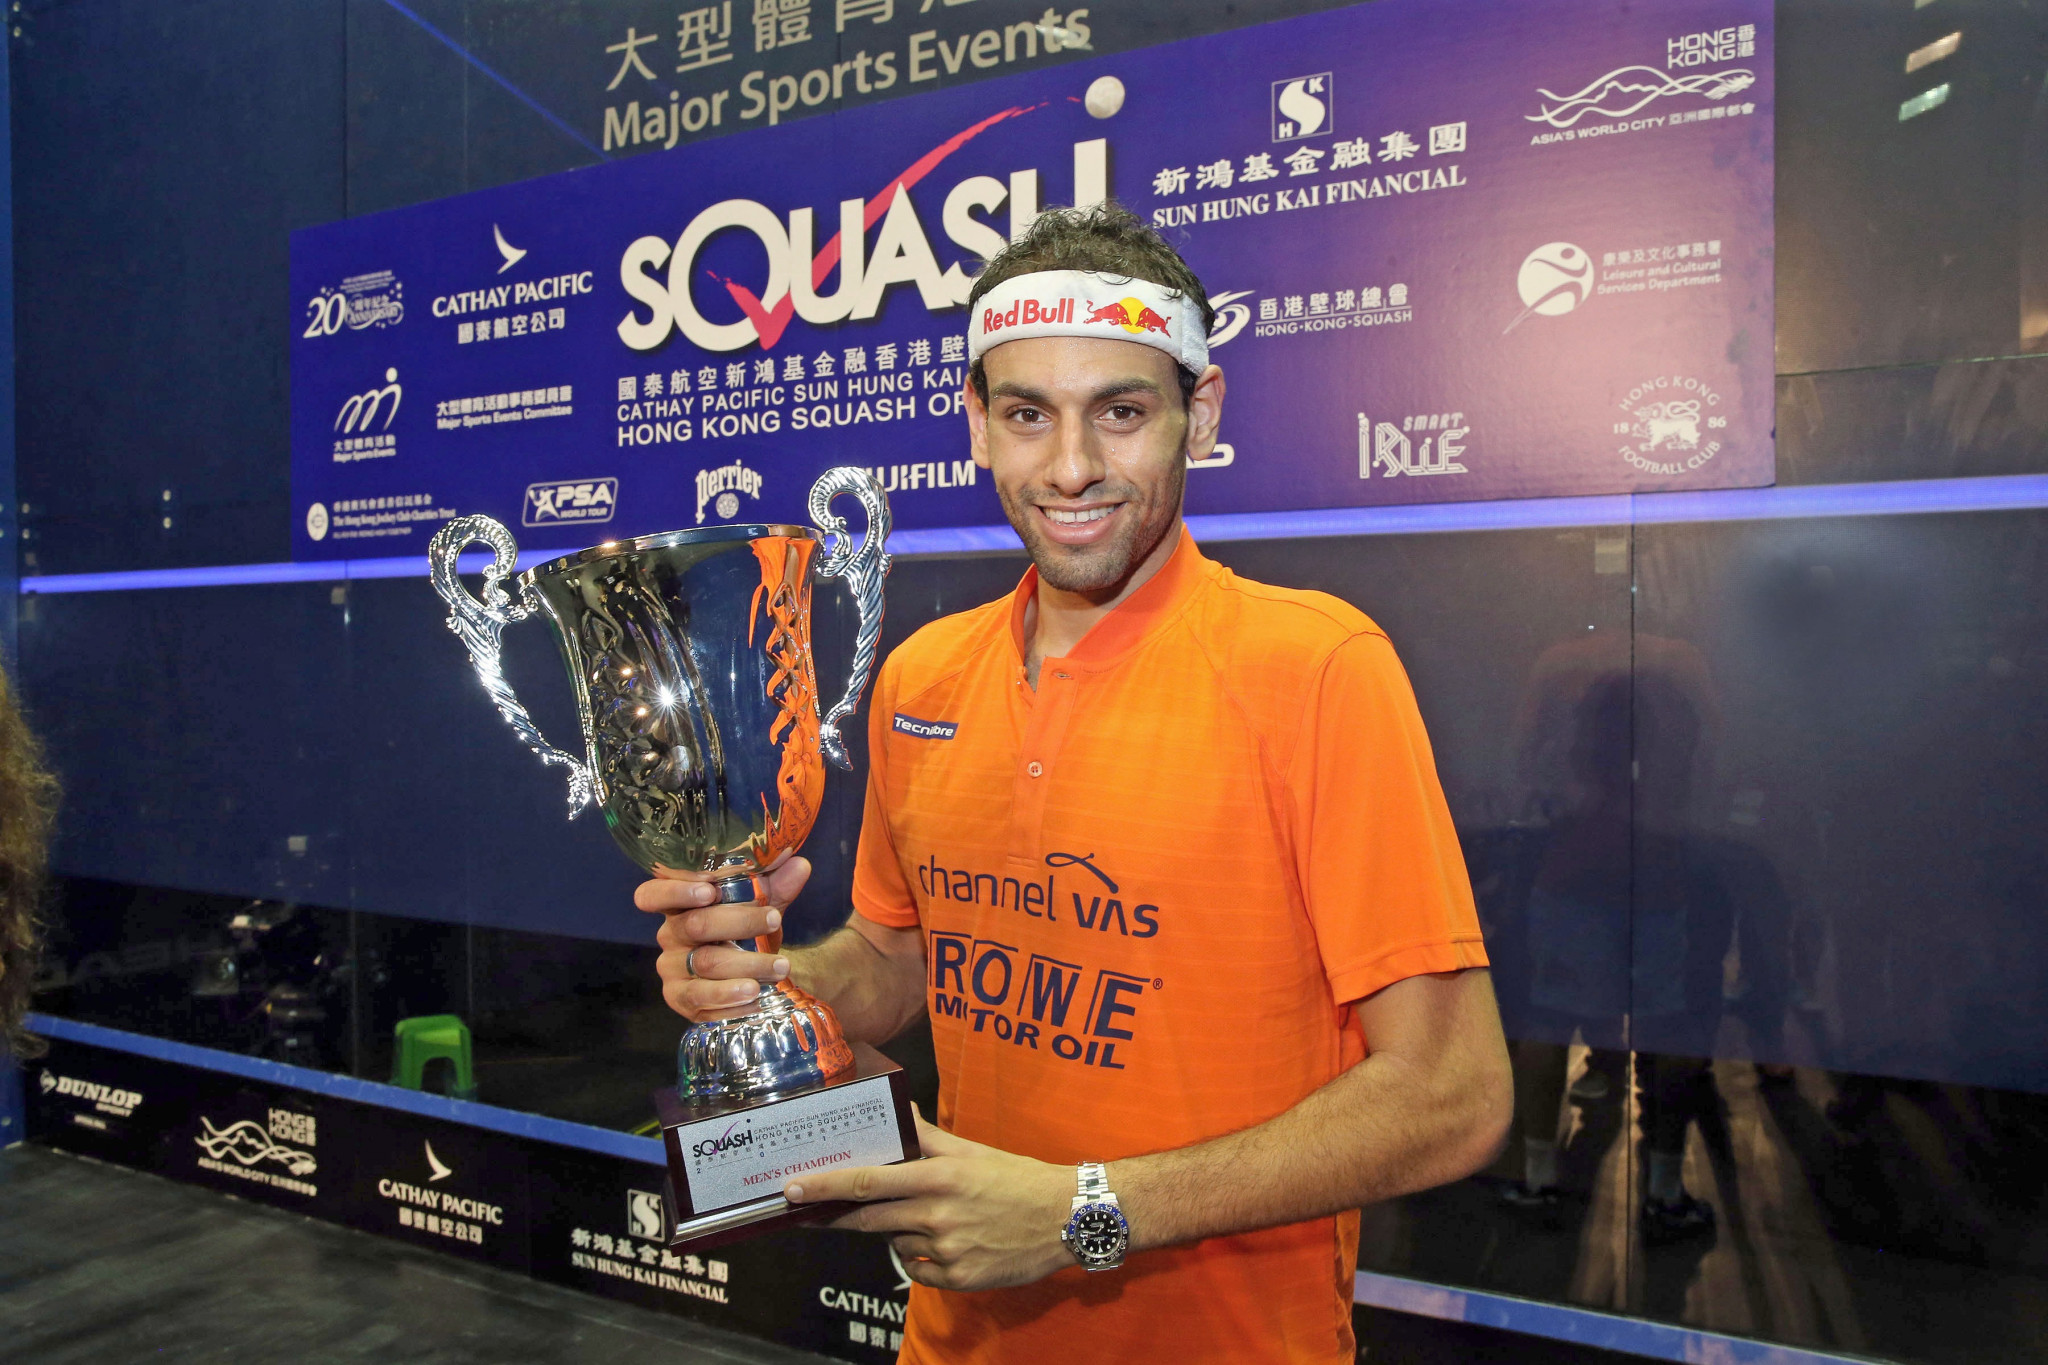 Egyptians Elshorbagy and El Sherbini triumph at PSA Hong Kong Open